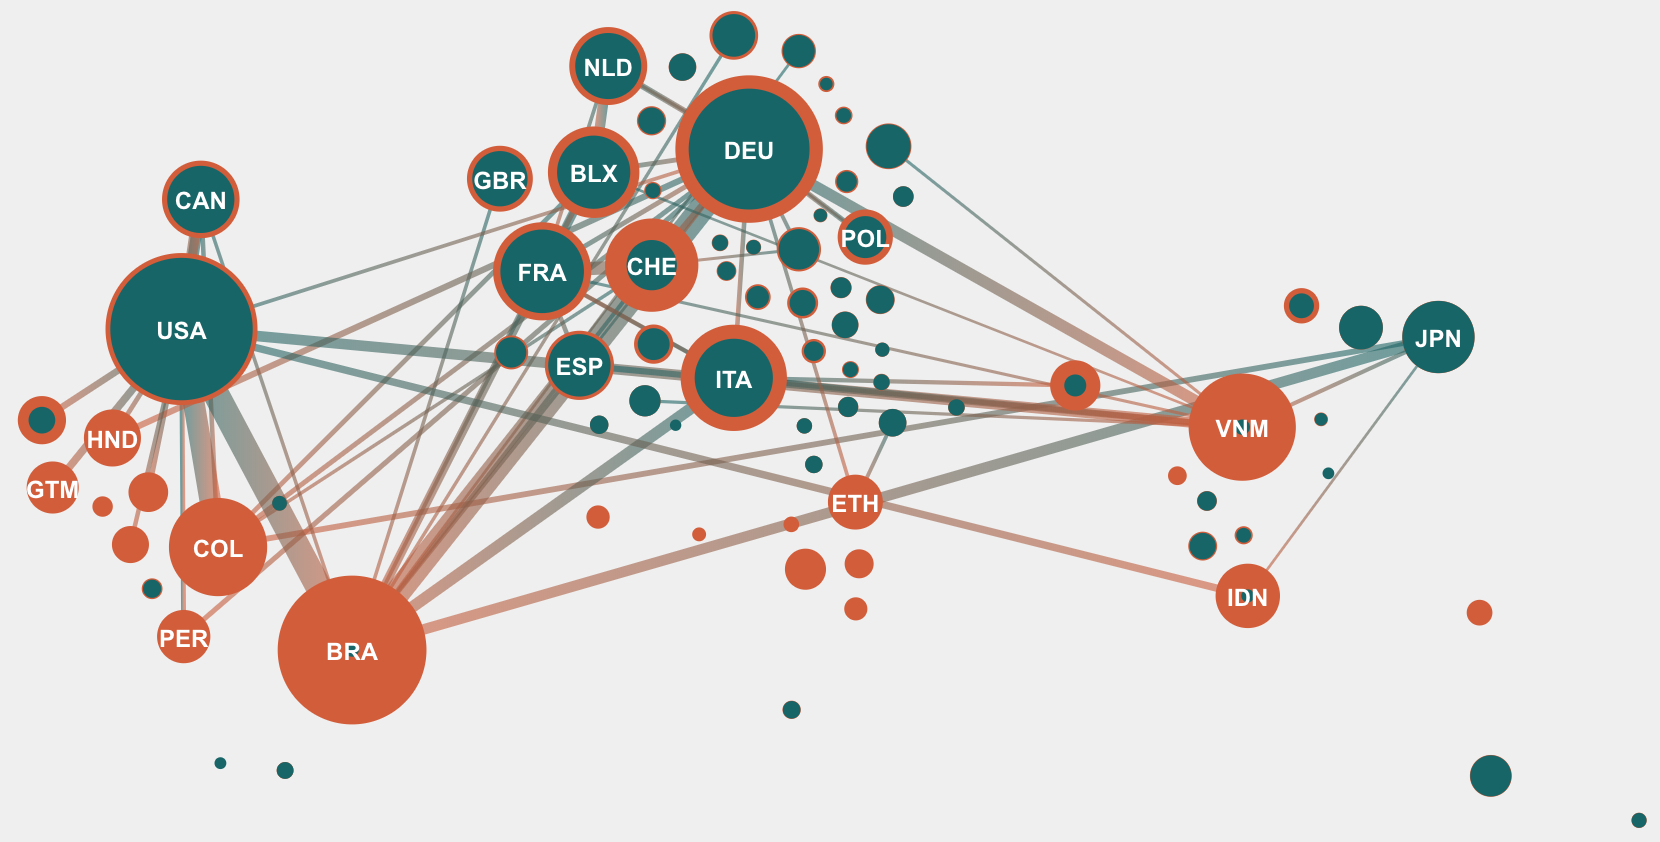 Figure 1: Network graph showing imports and exports of coffee in 2014.